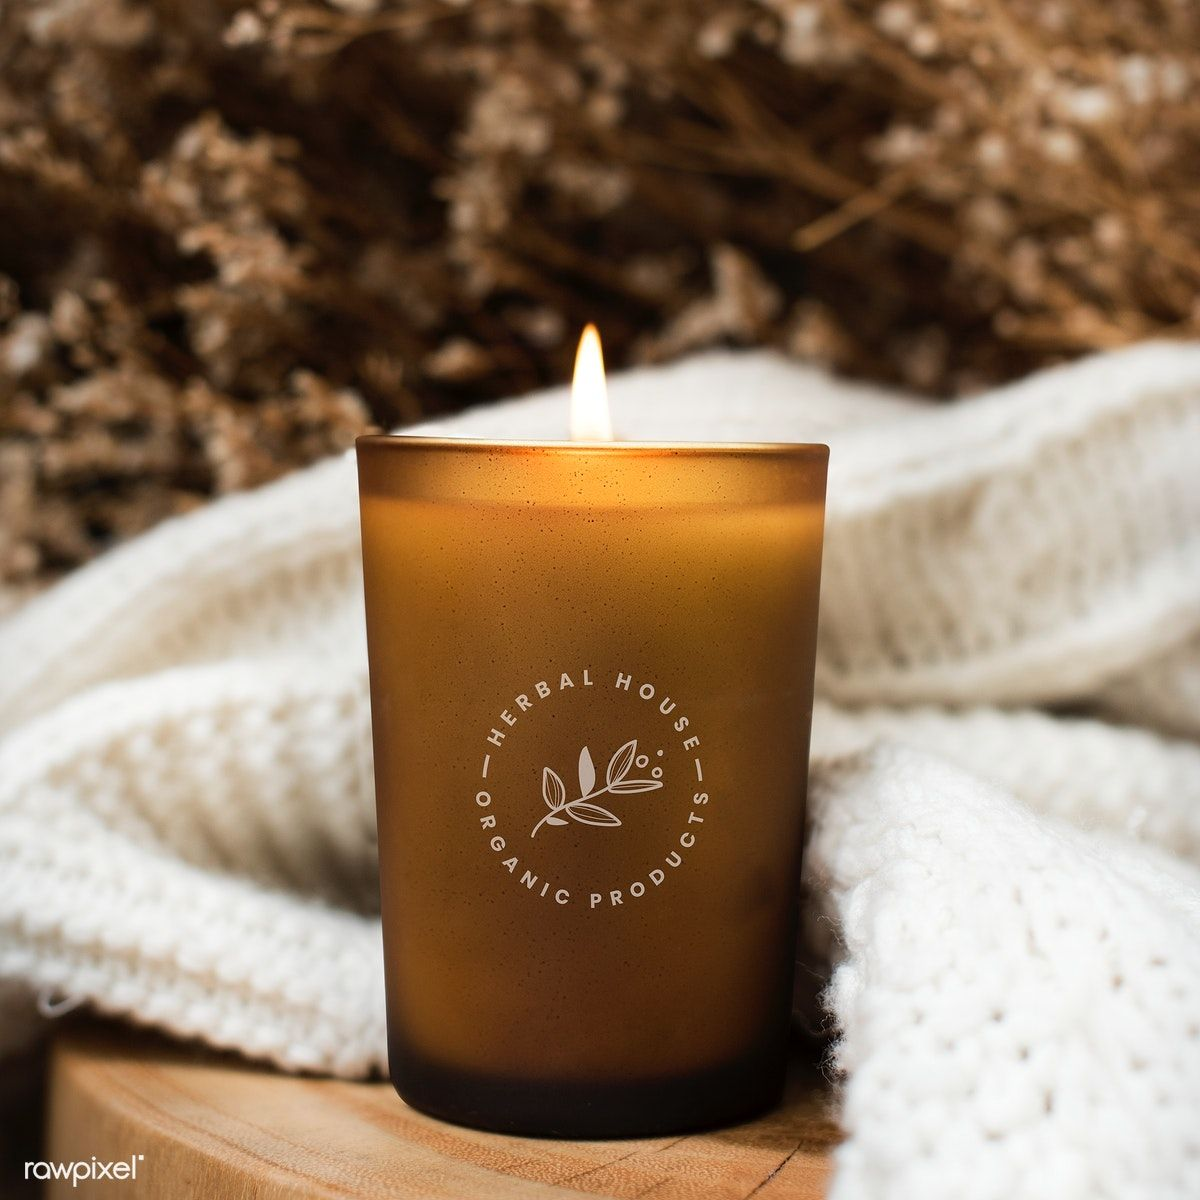 Aroma candle on a wooden table free image by rawpixel